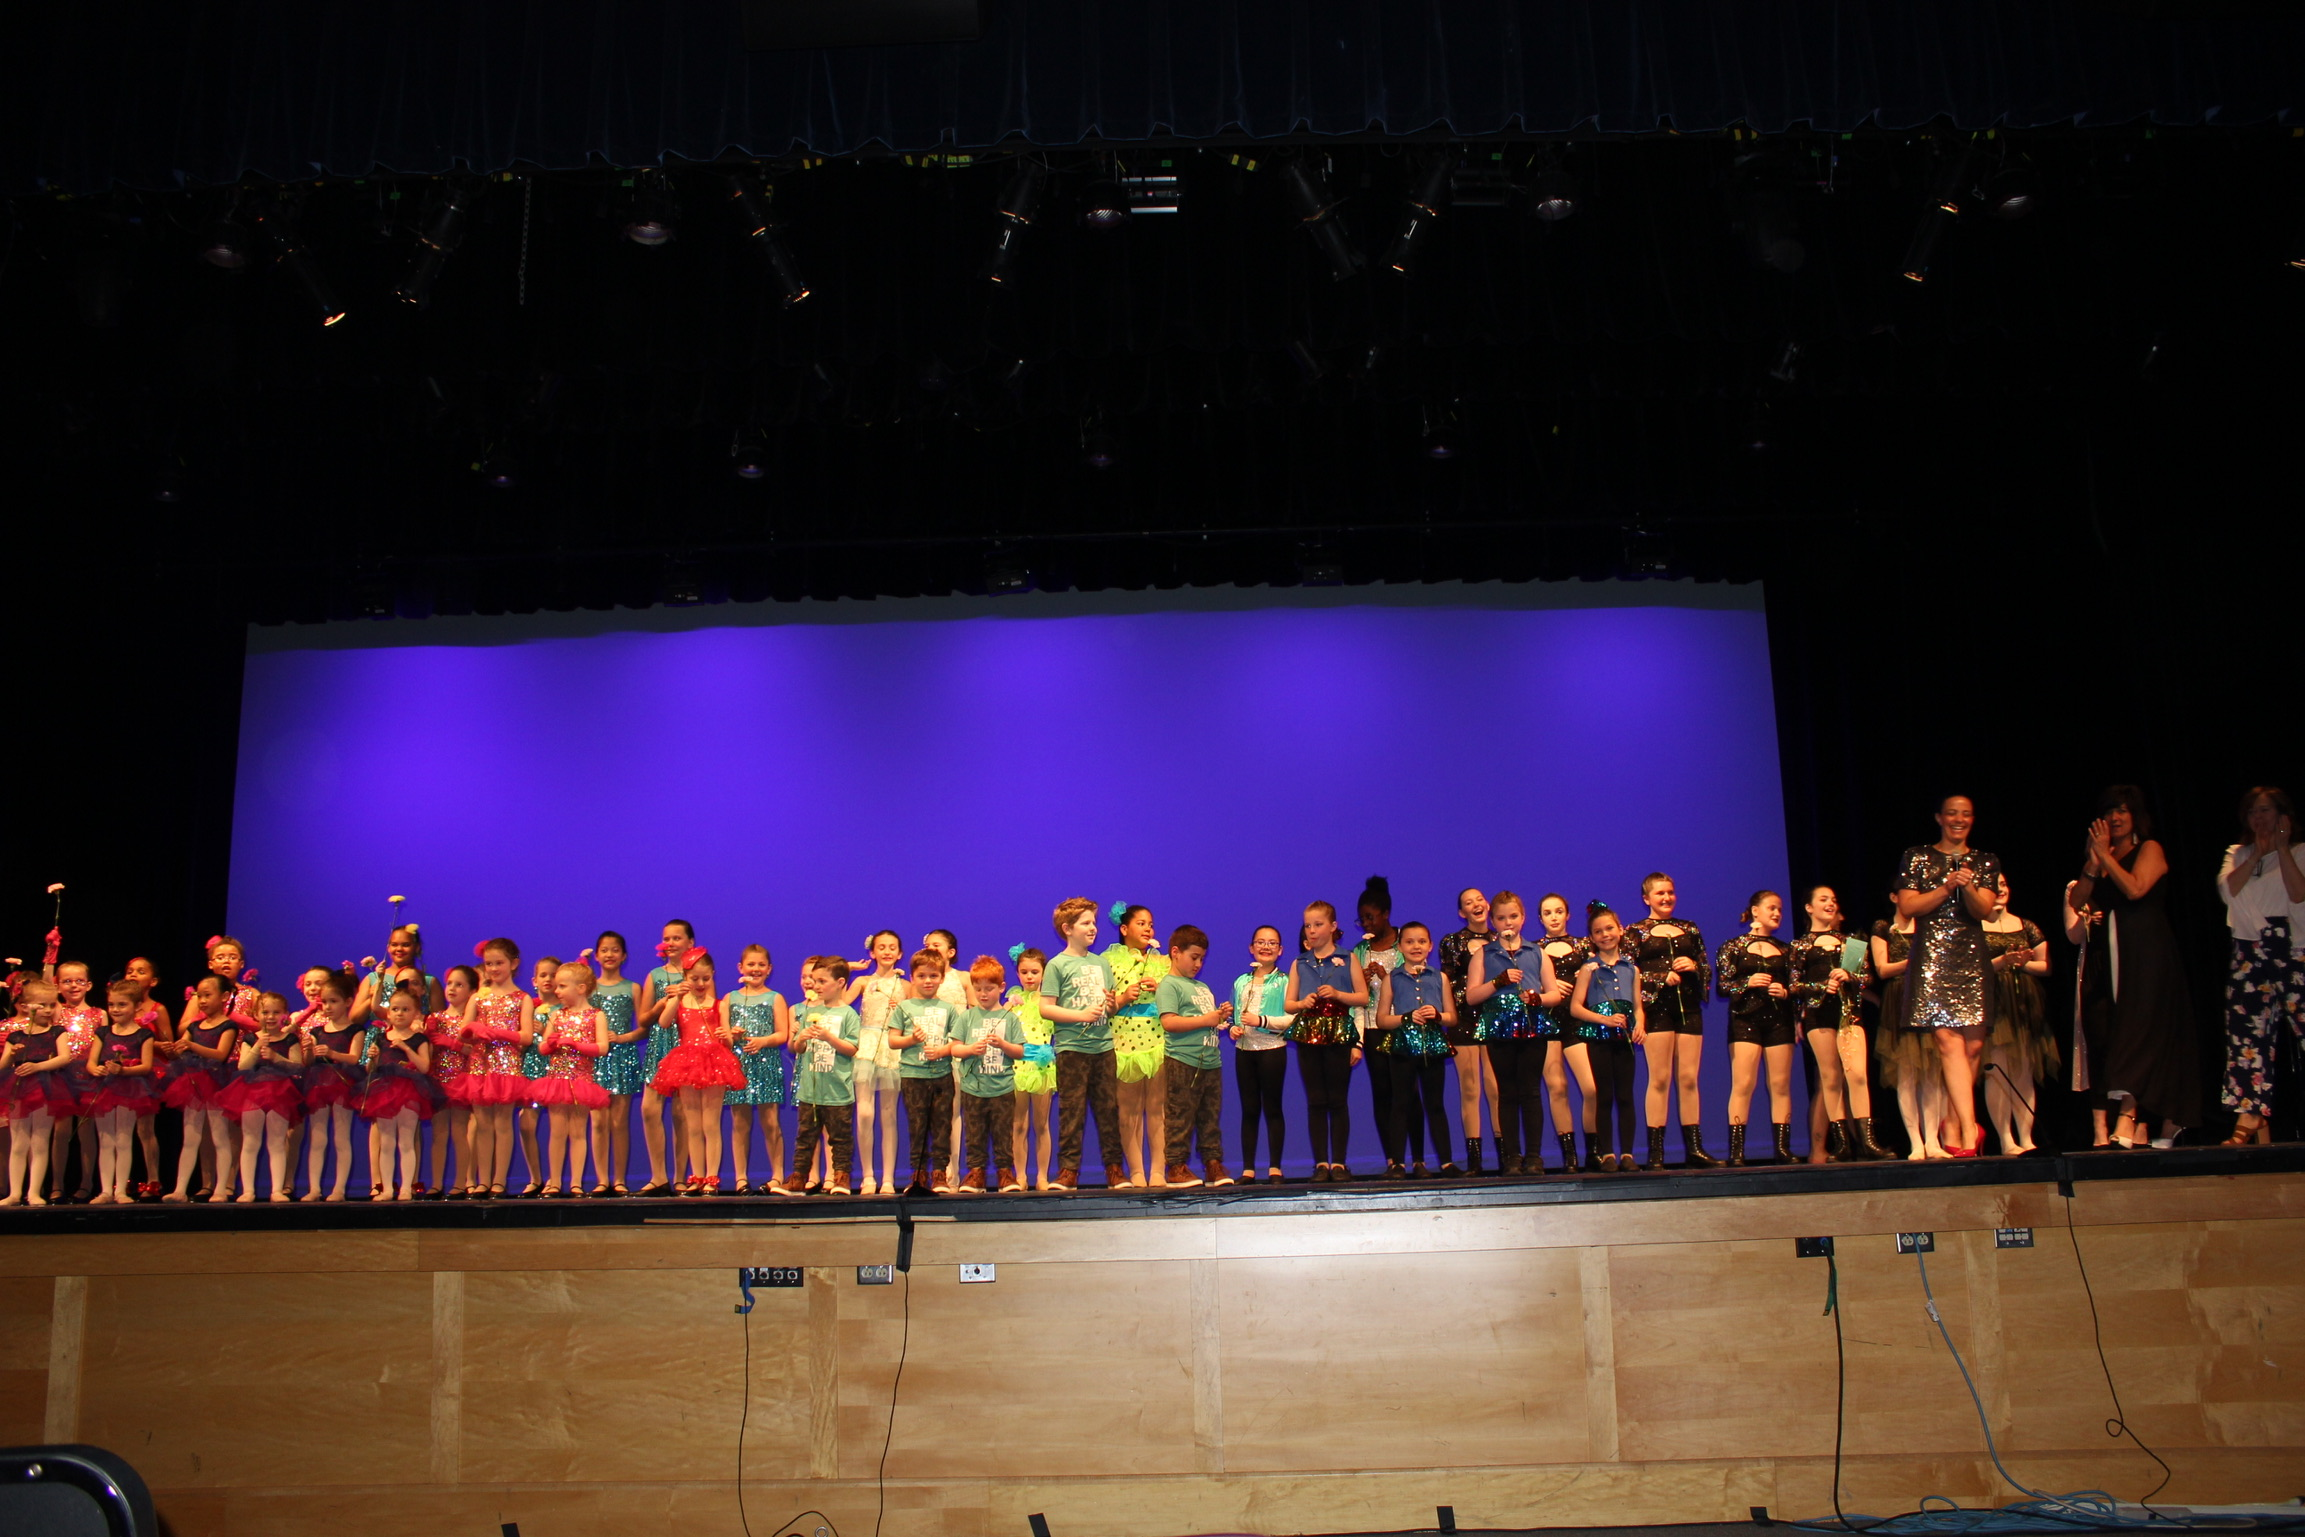 Dance Recital 2019 - Bravo! Congratulations to all of our dancers on Recital 2019! We are so proud of all of our dancers for their hard work, dedication & teamwork throughout the year. You all shined so bright on the stage! Thank you to all of the parents for choosing New Steps. We love what we get to do and we are blessed to have an incredible Dance Family! Thank you for making our 35th year in business a great year!